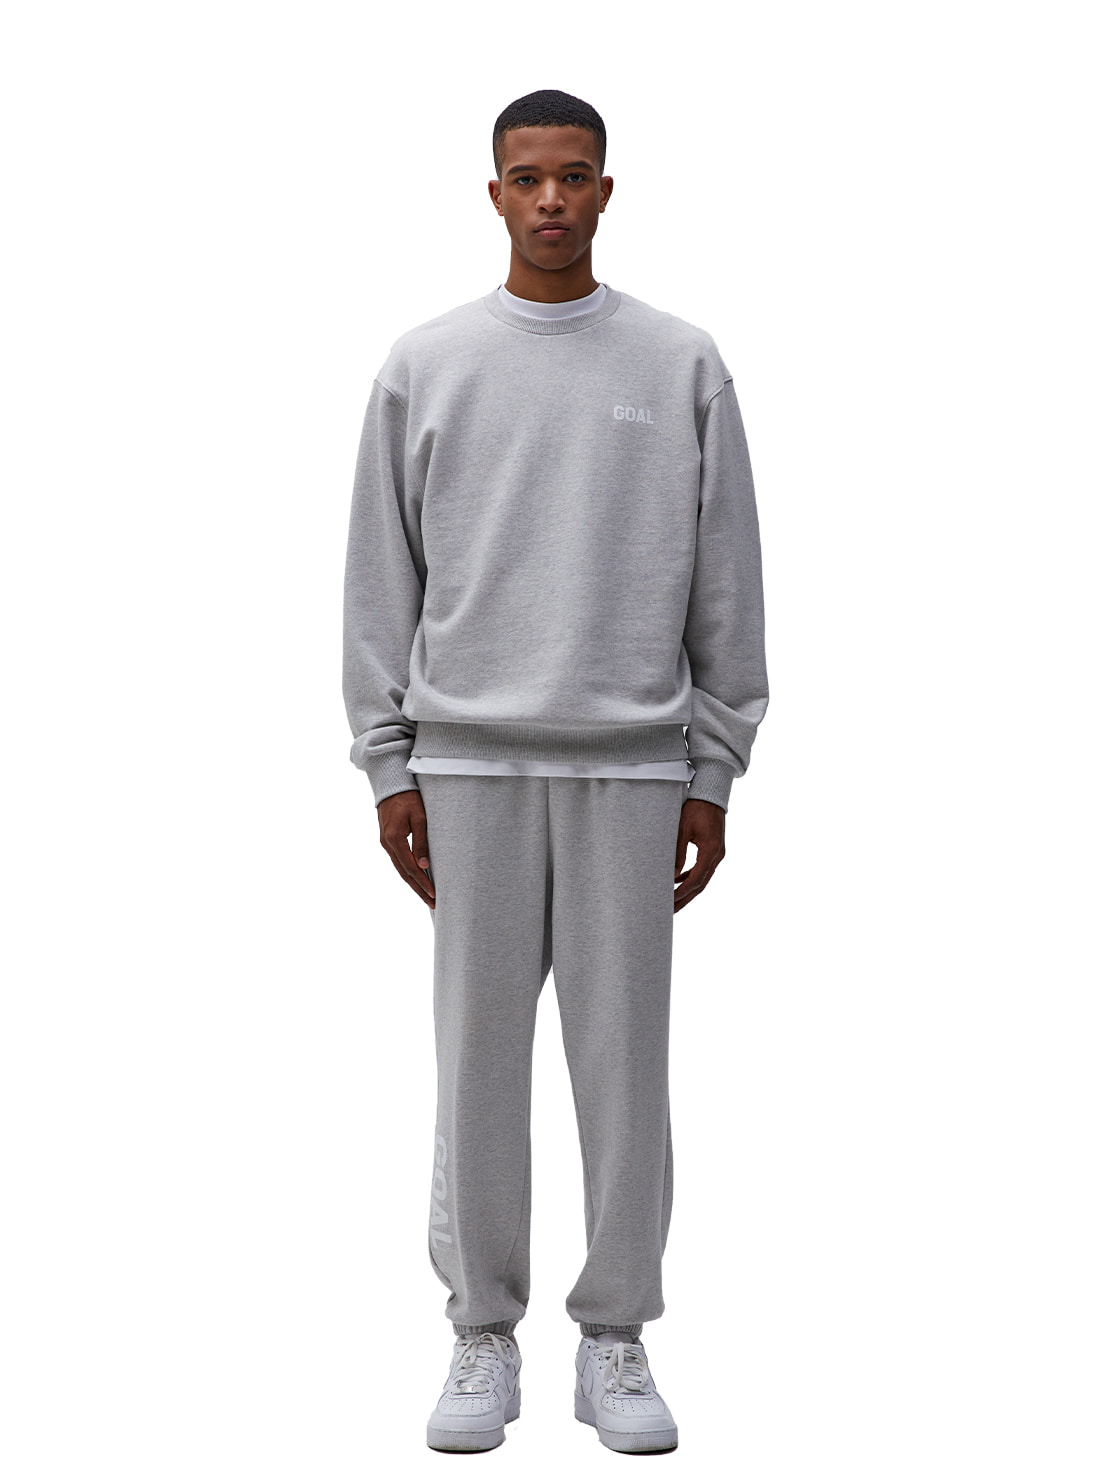 GOALSTUDIO [10% OFF] FLOCKING SWEATSHIRT & PANTS SET - GREY